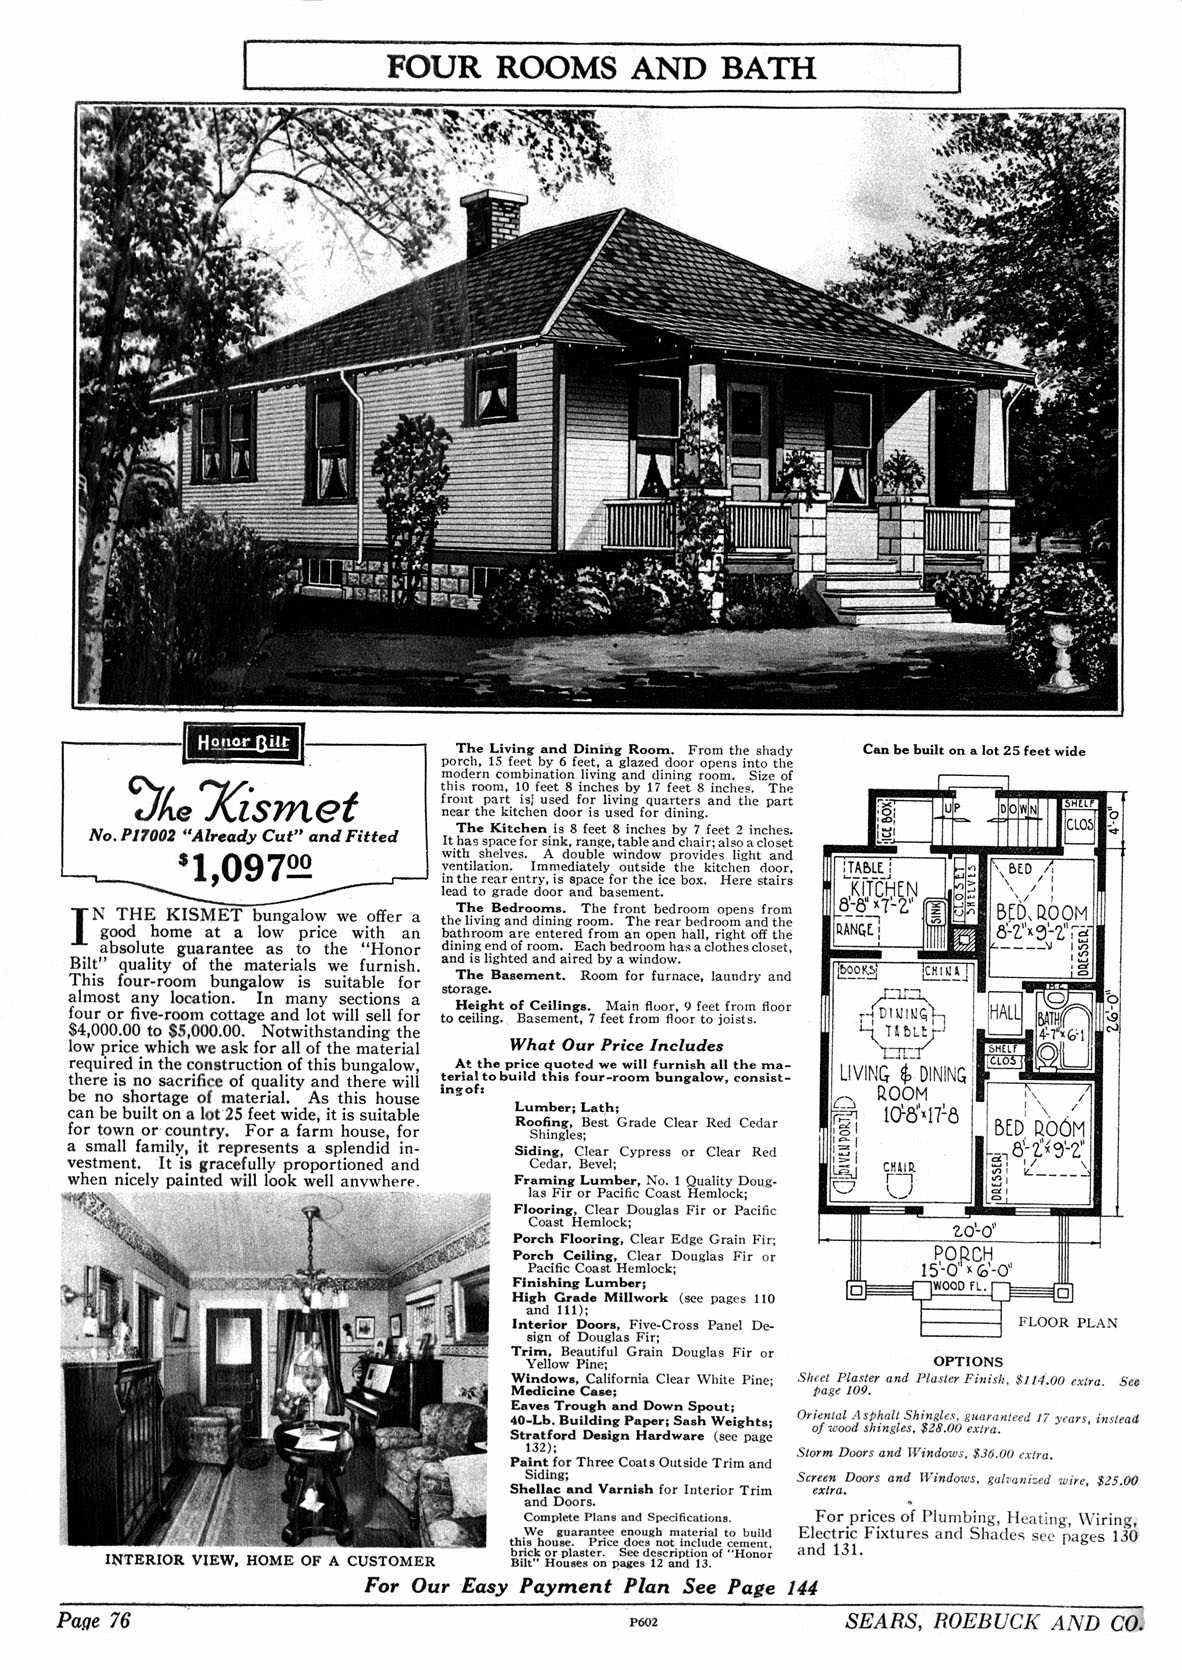 Wonderful 1928 Sears U0026 Roebuck Catalog House....this Looks Exactly Like Our 19